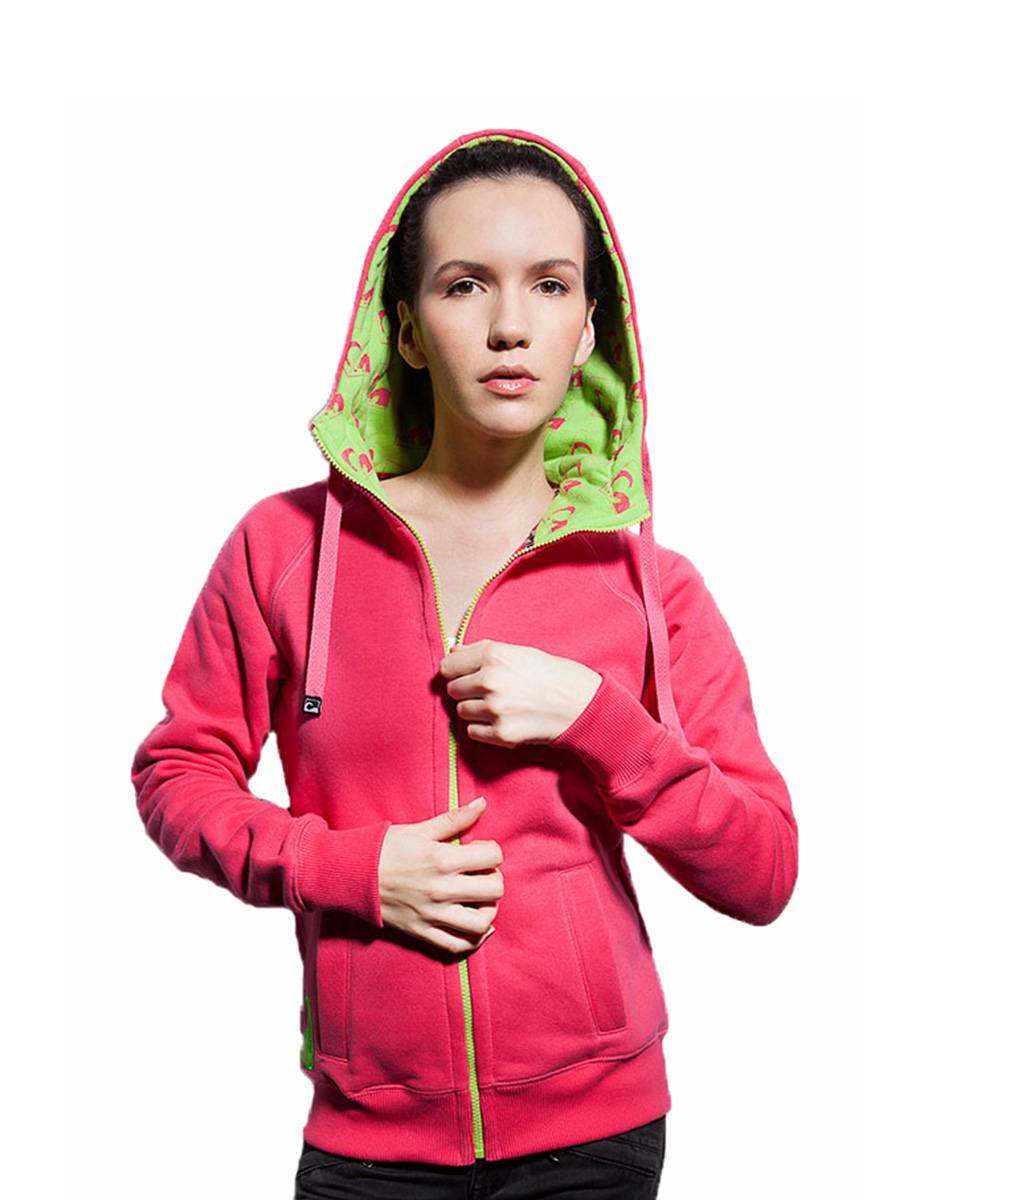 fa70c81b740 Surf Model Wearing Evokaii Zipper Wave Hoodie Seen From The Front In Pink  Colour